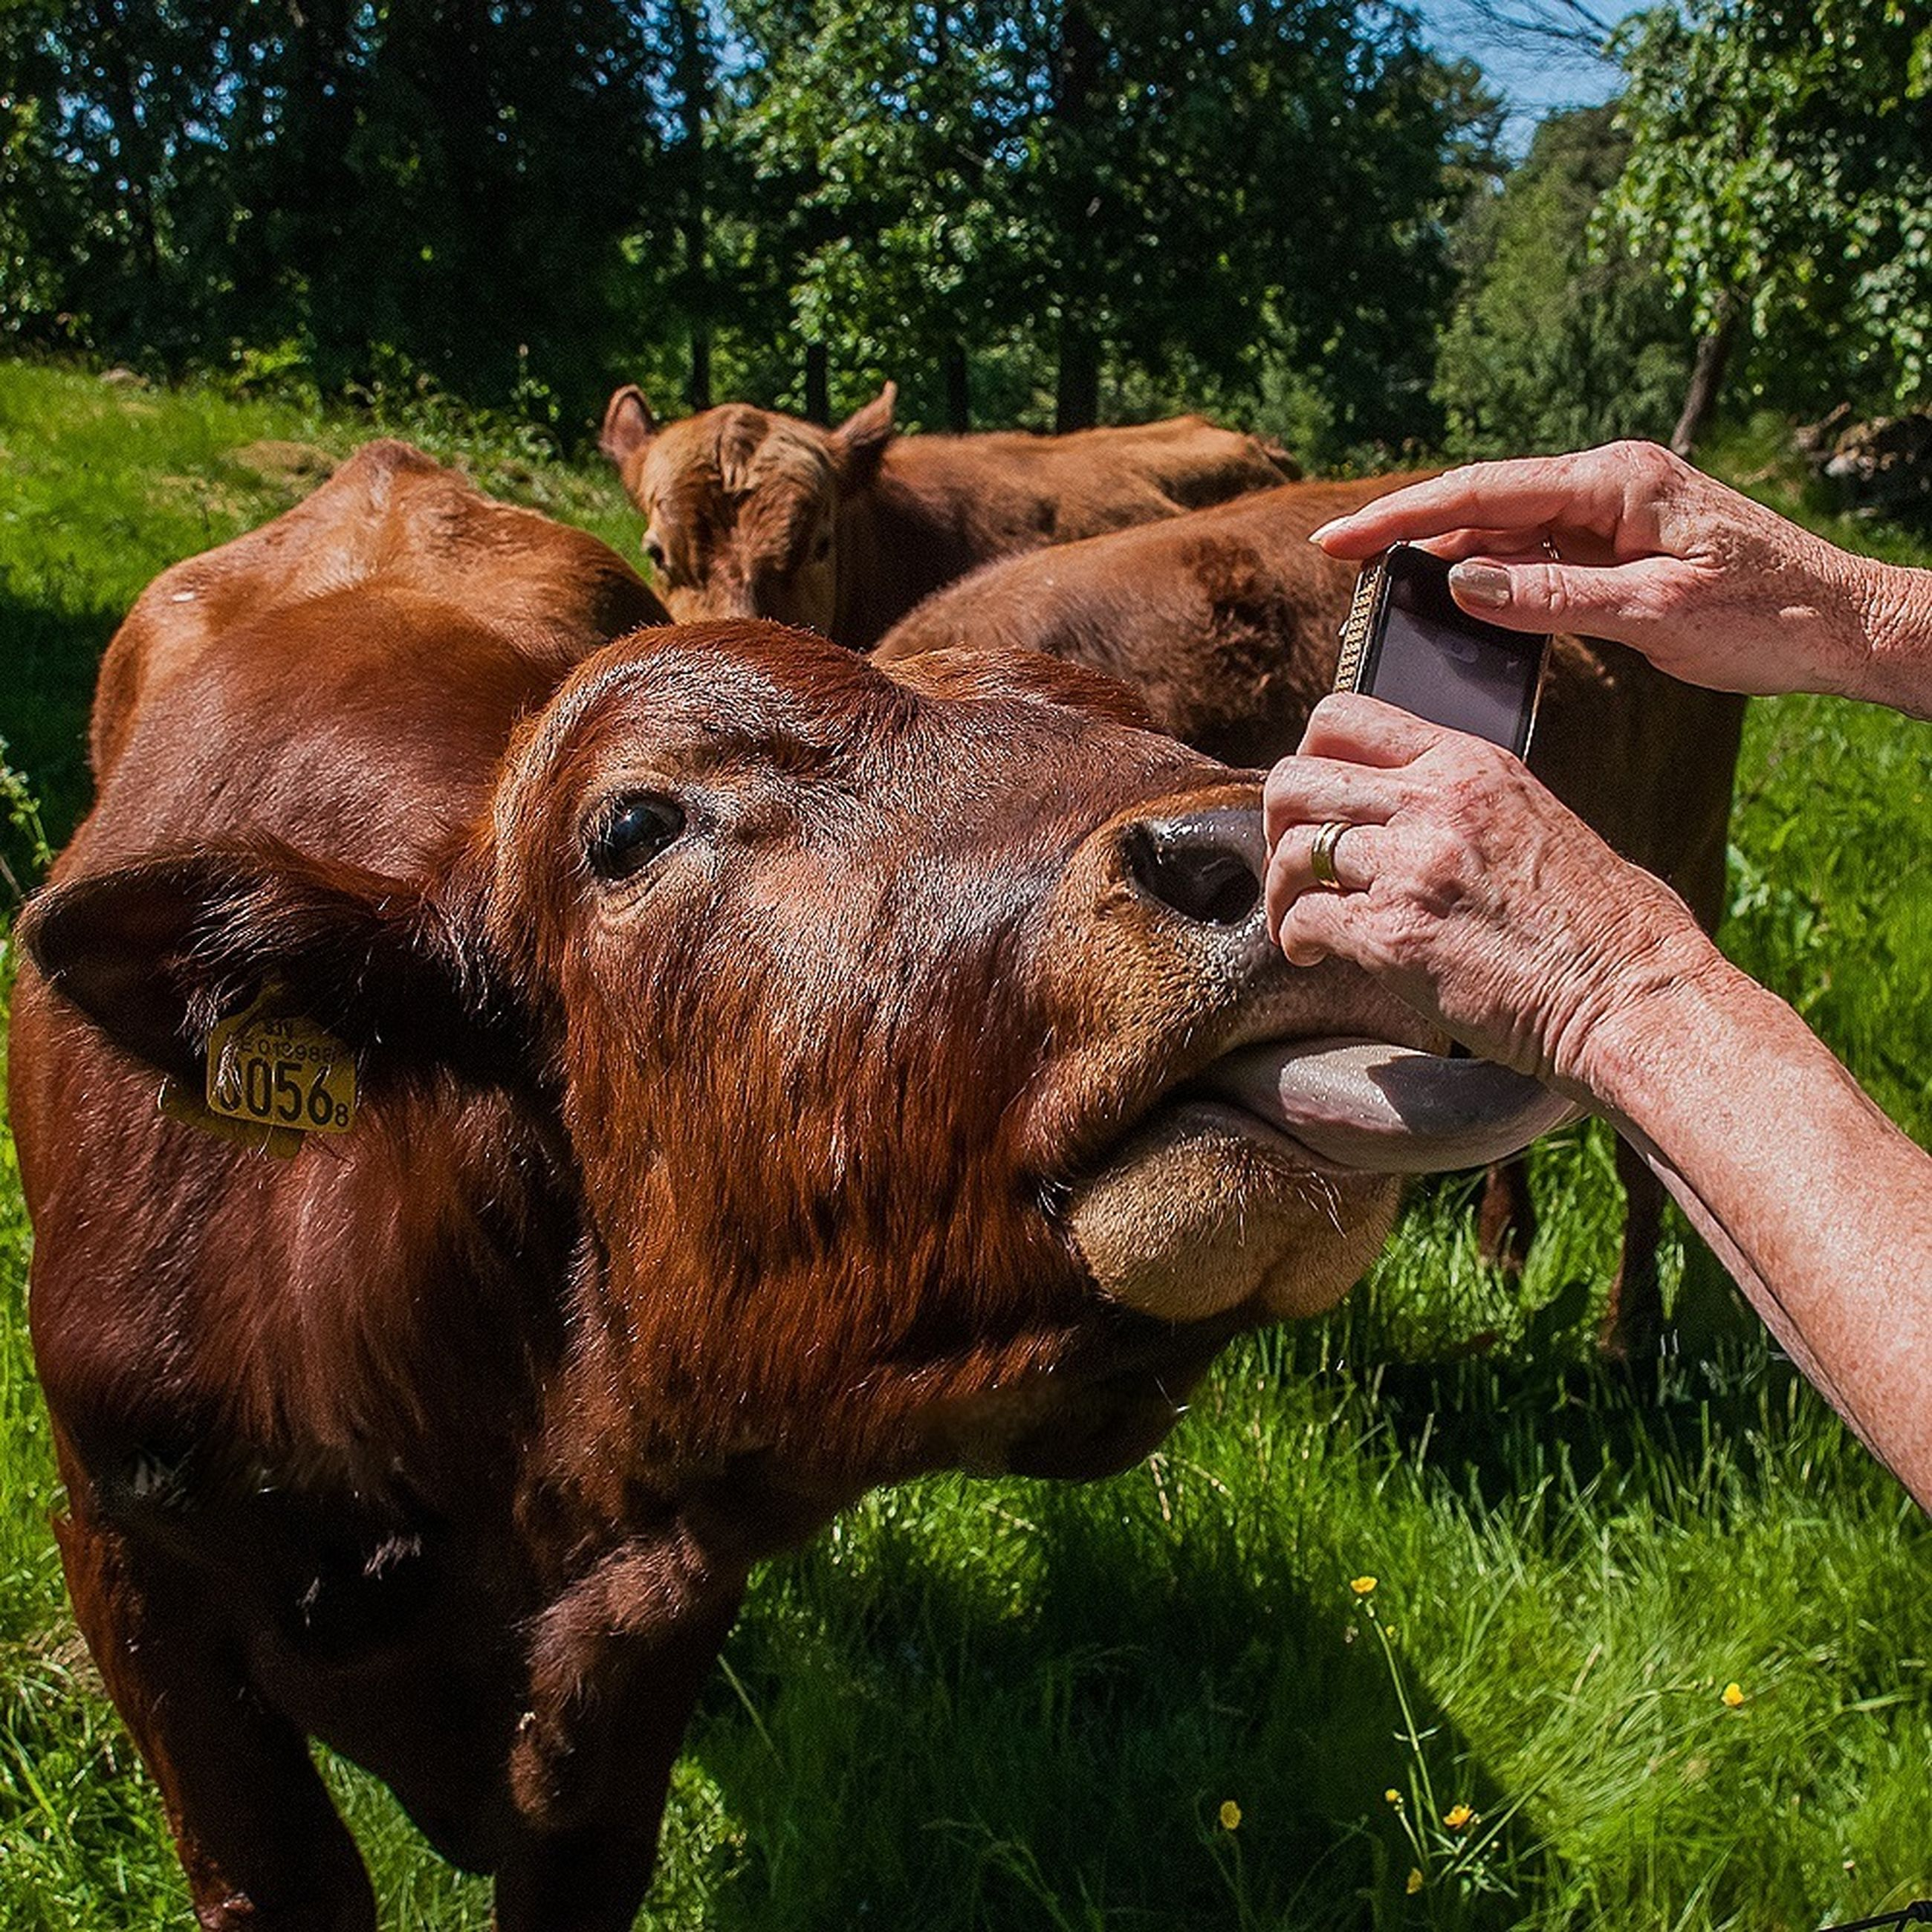 grass, tree, field, animal themes, sunlight, mammal, grassy, one animal, day, outdoors, nature, part of, close-up, one person, livestock, domestic animals, growth, brown, relaxation